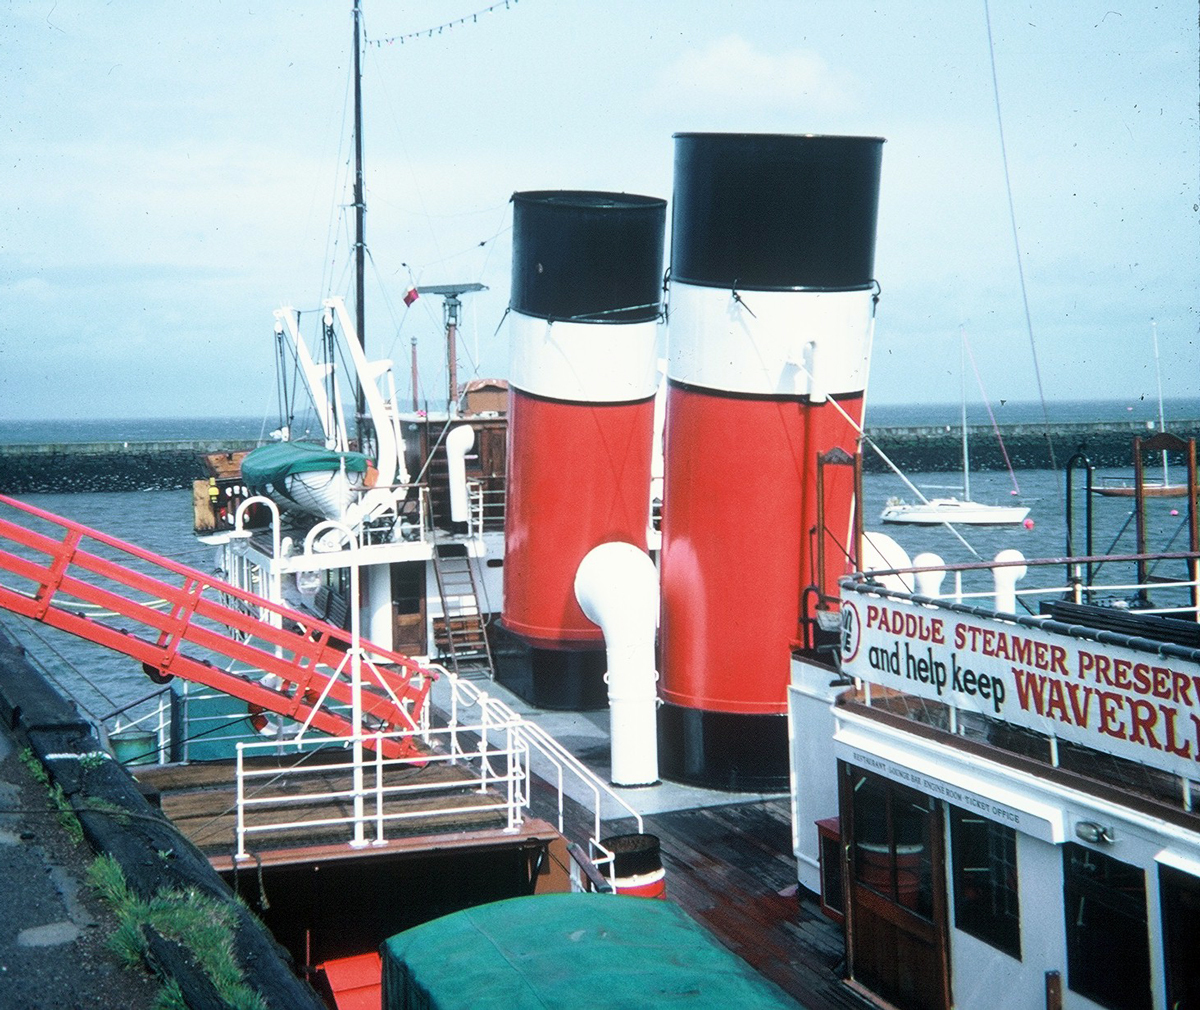 The PS Waverley At Granton Harbour 1980s